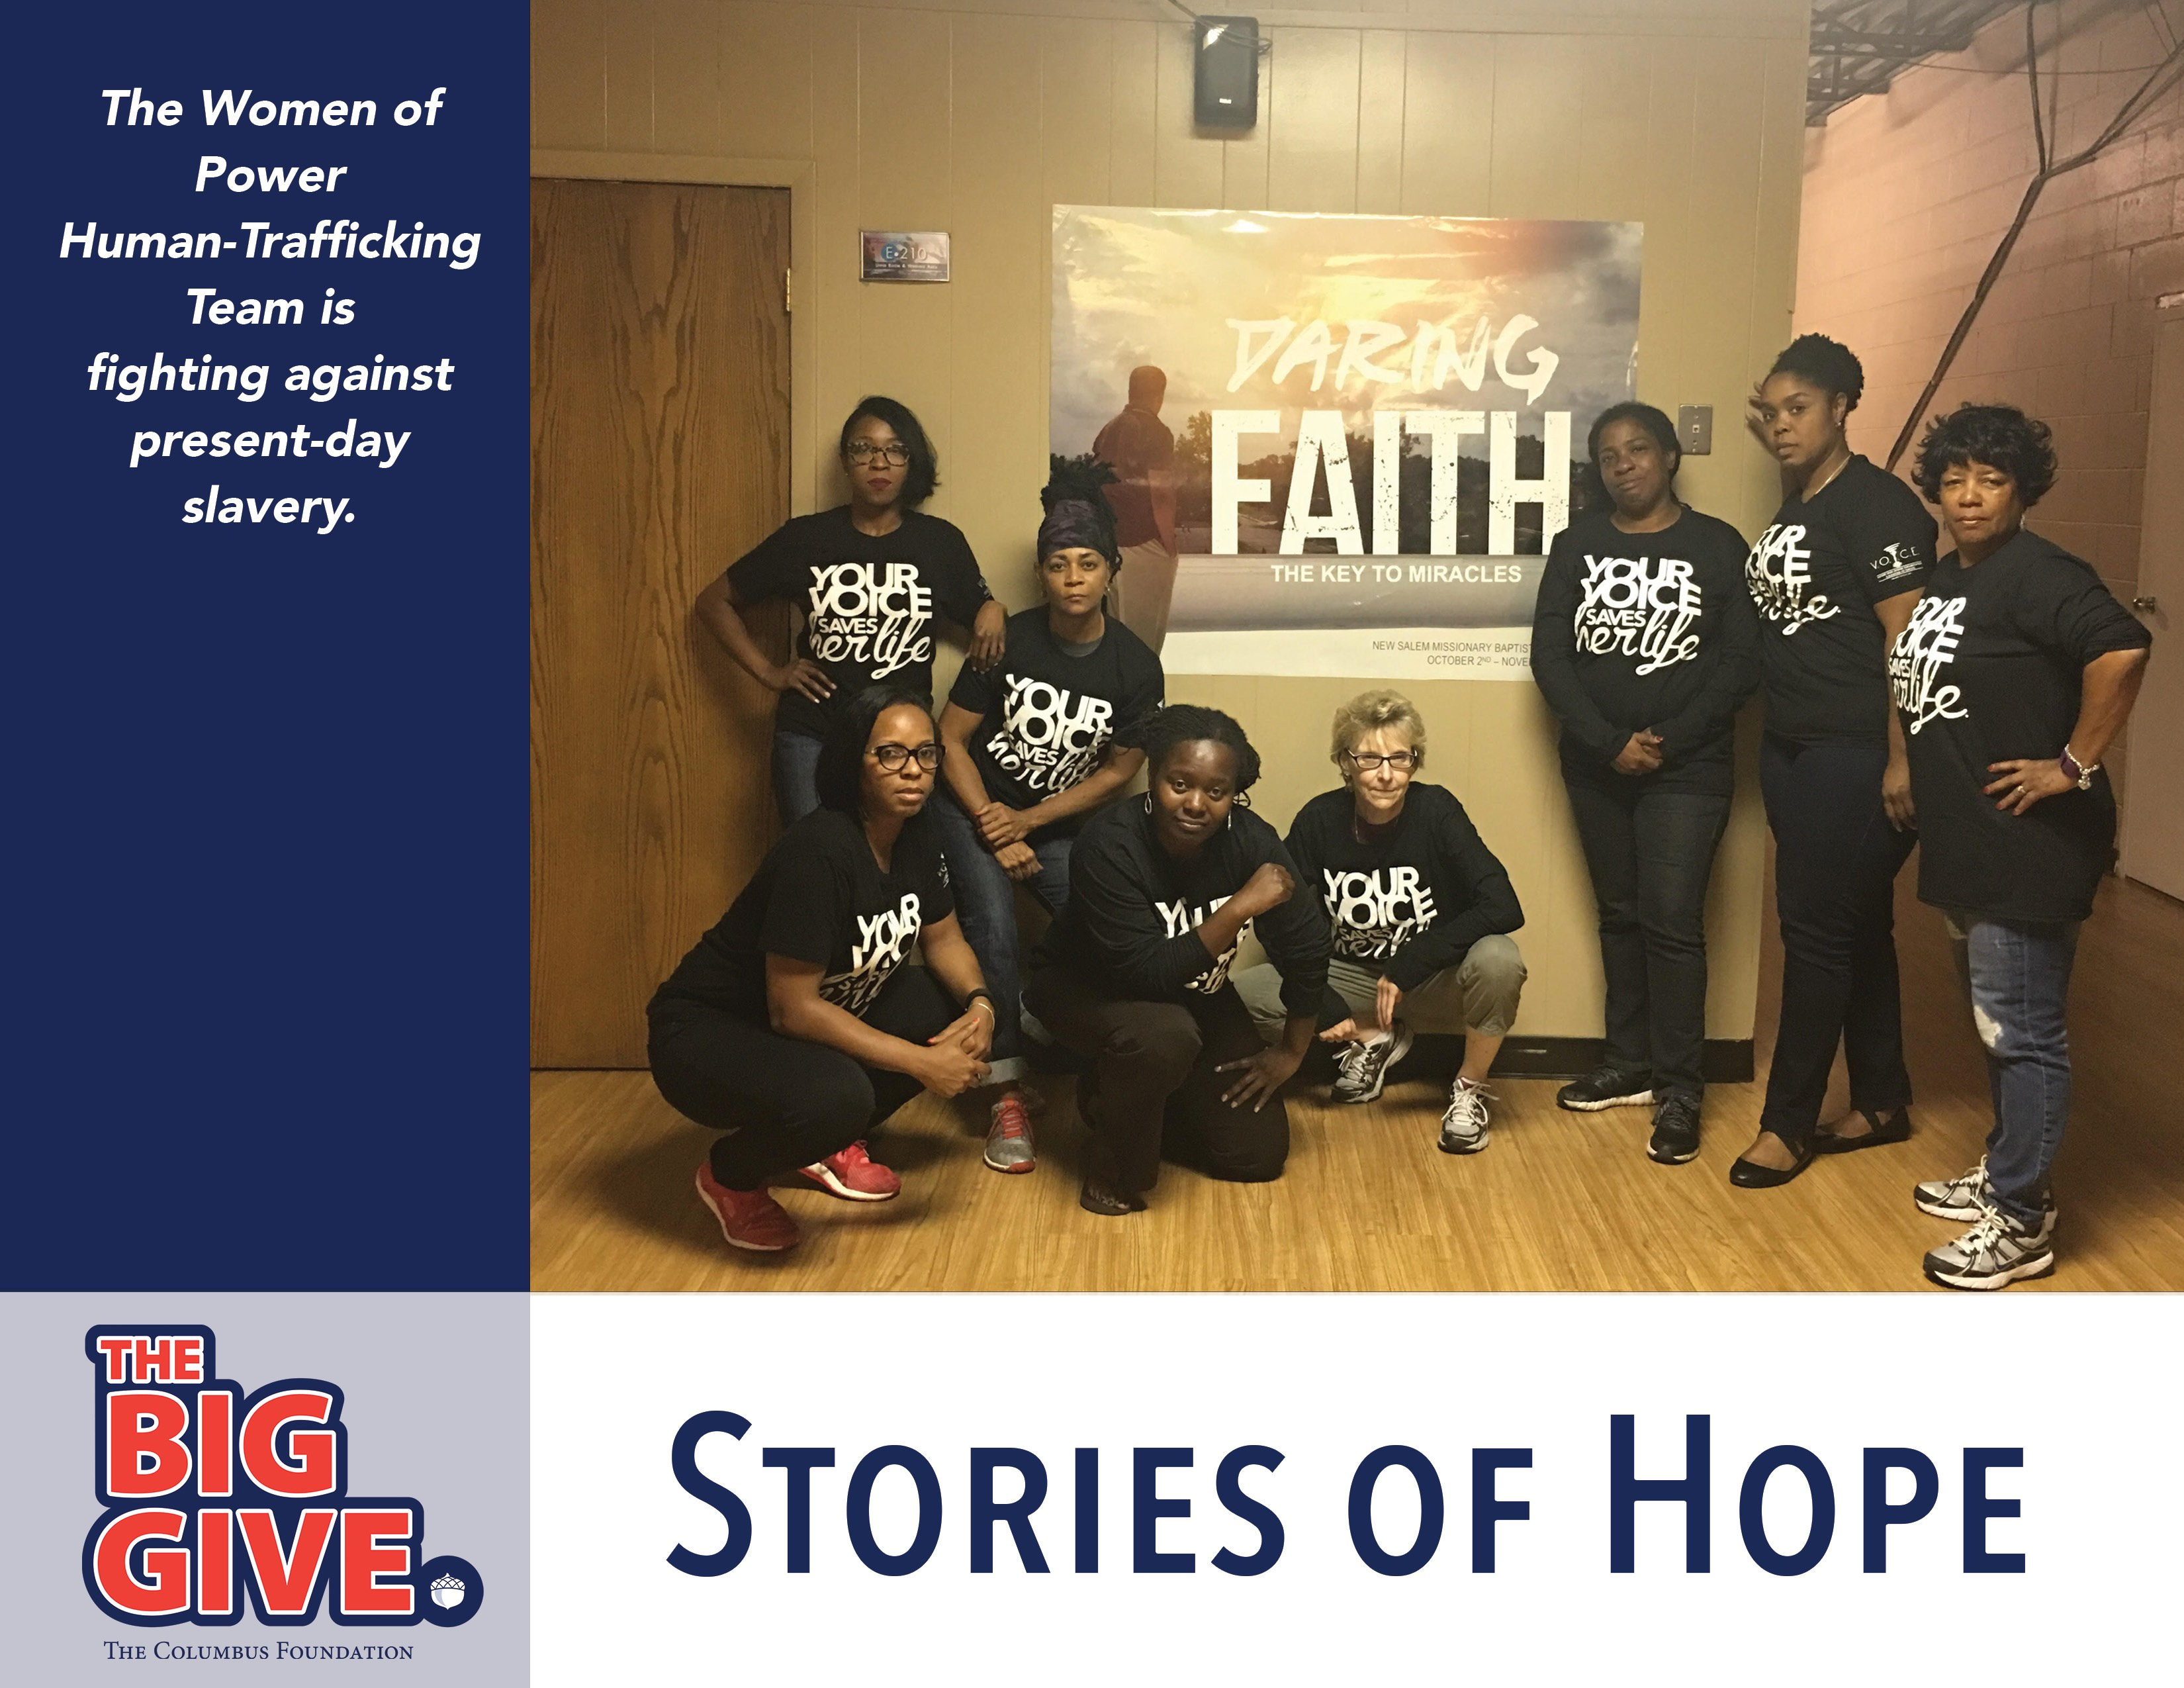 Human Trafficking Stories of Hope